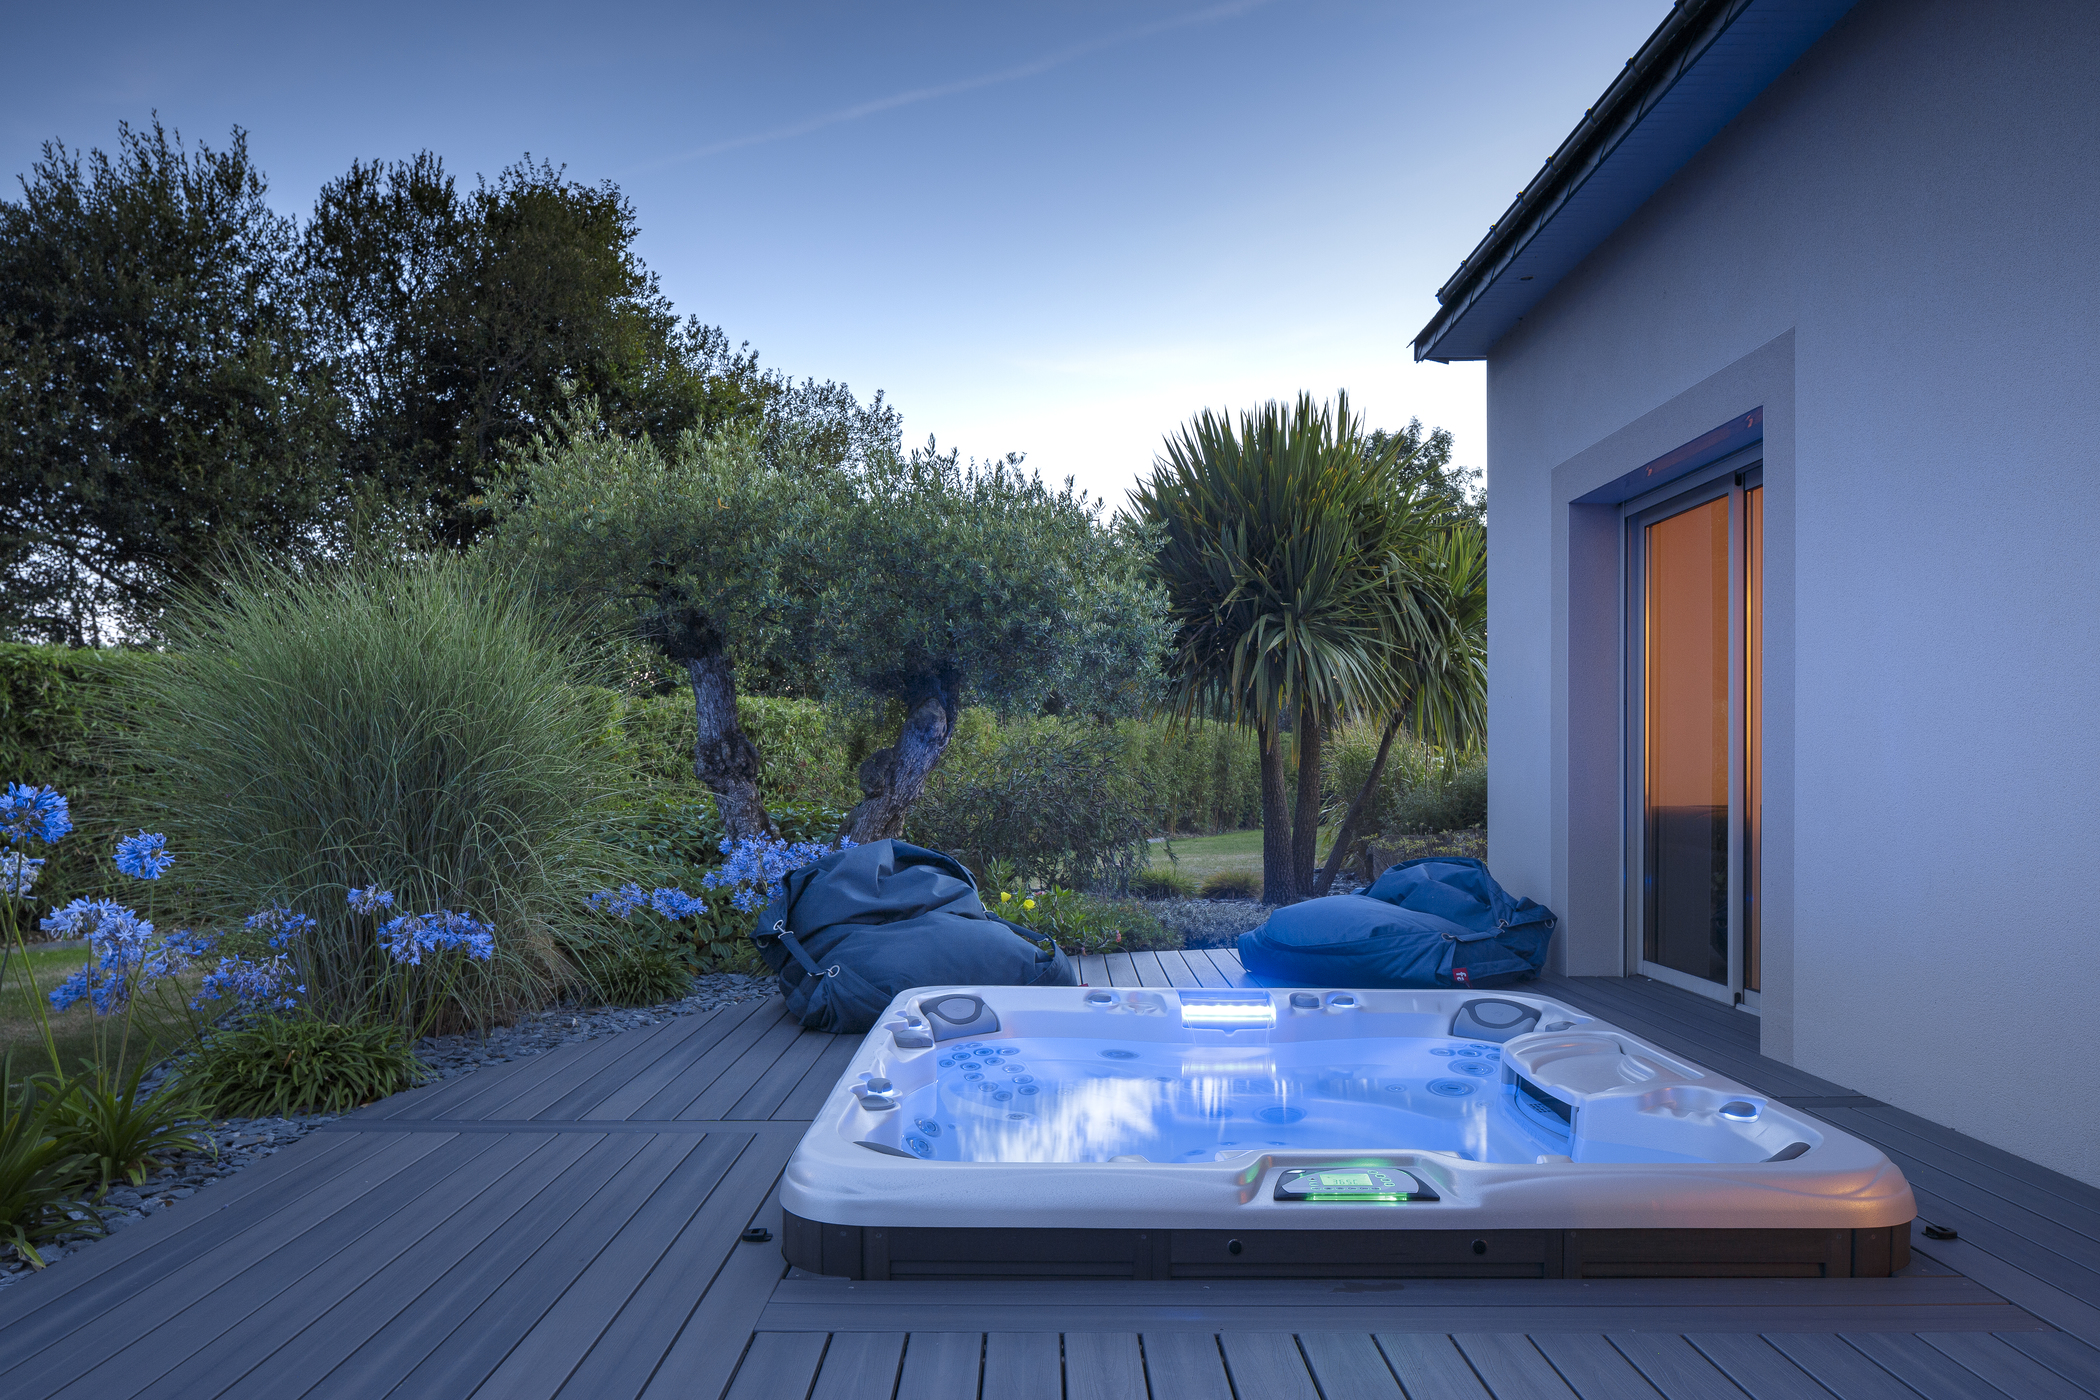 Outdoor in-ground hot tub installation in a deck surrounded by greenery.